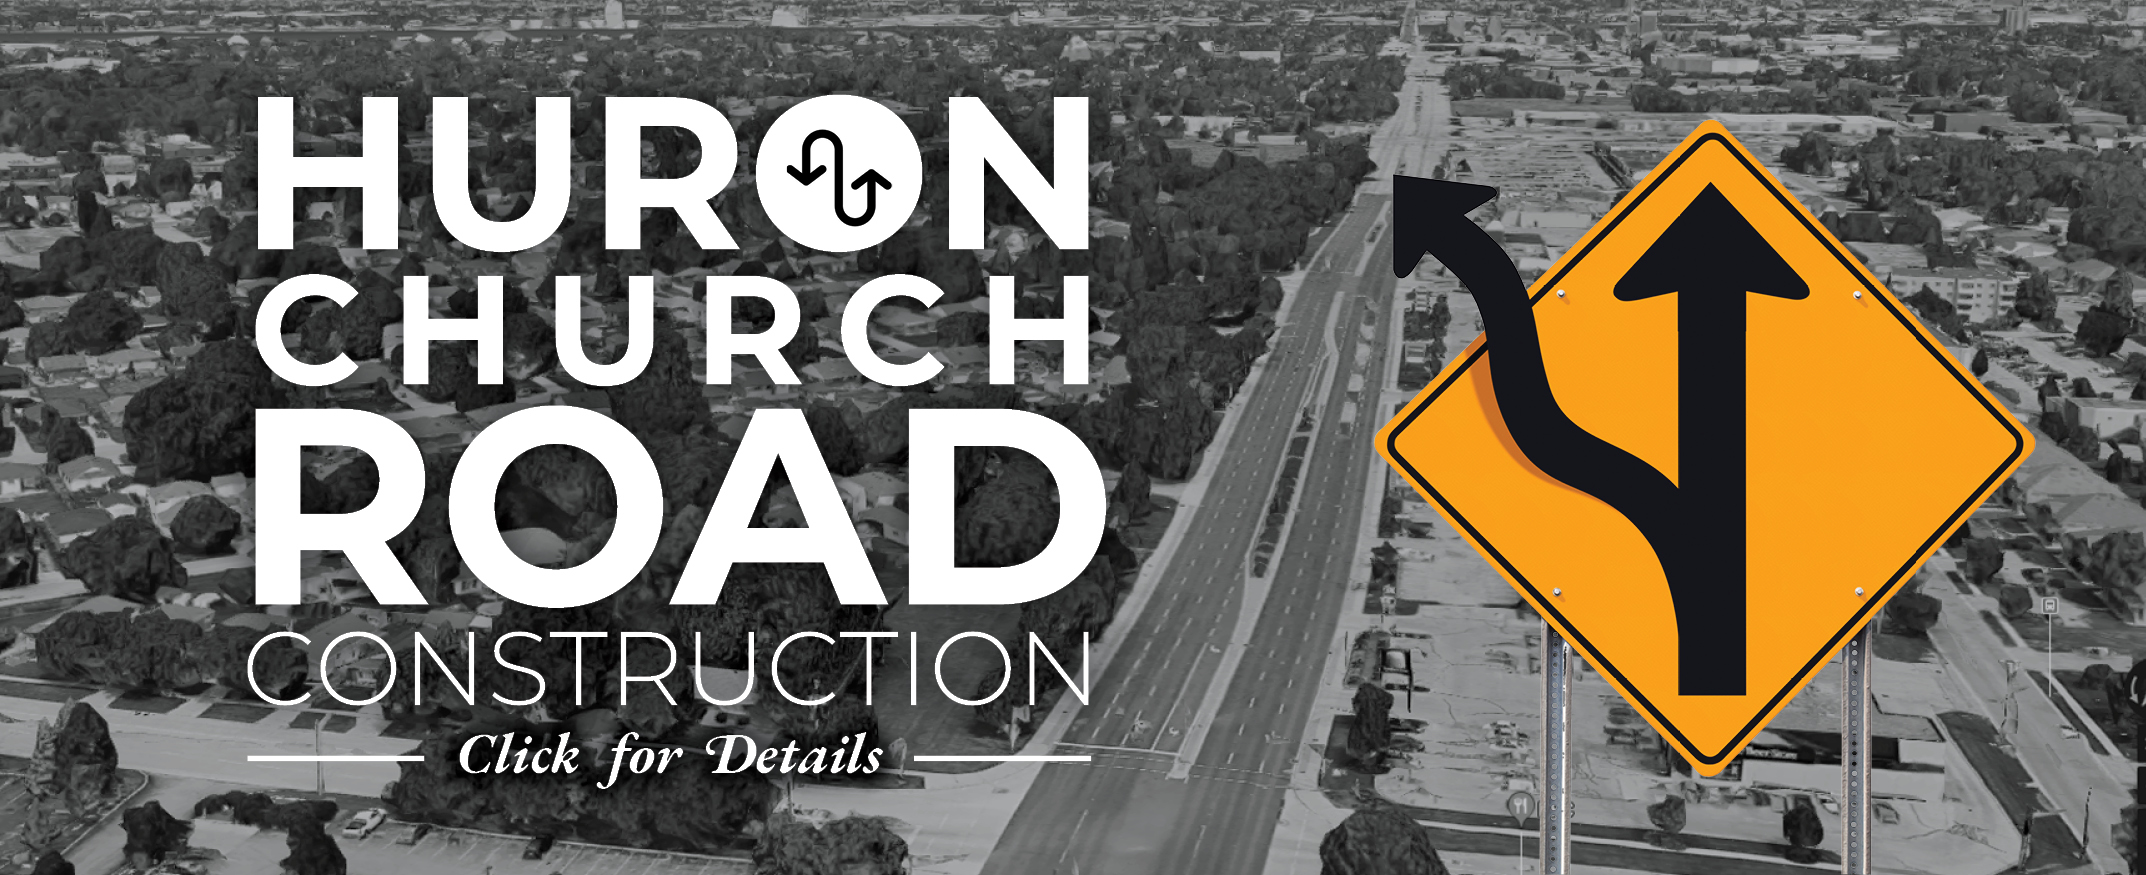 Huron Church Road Construction. Click for details